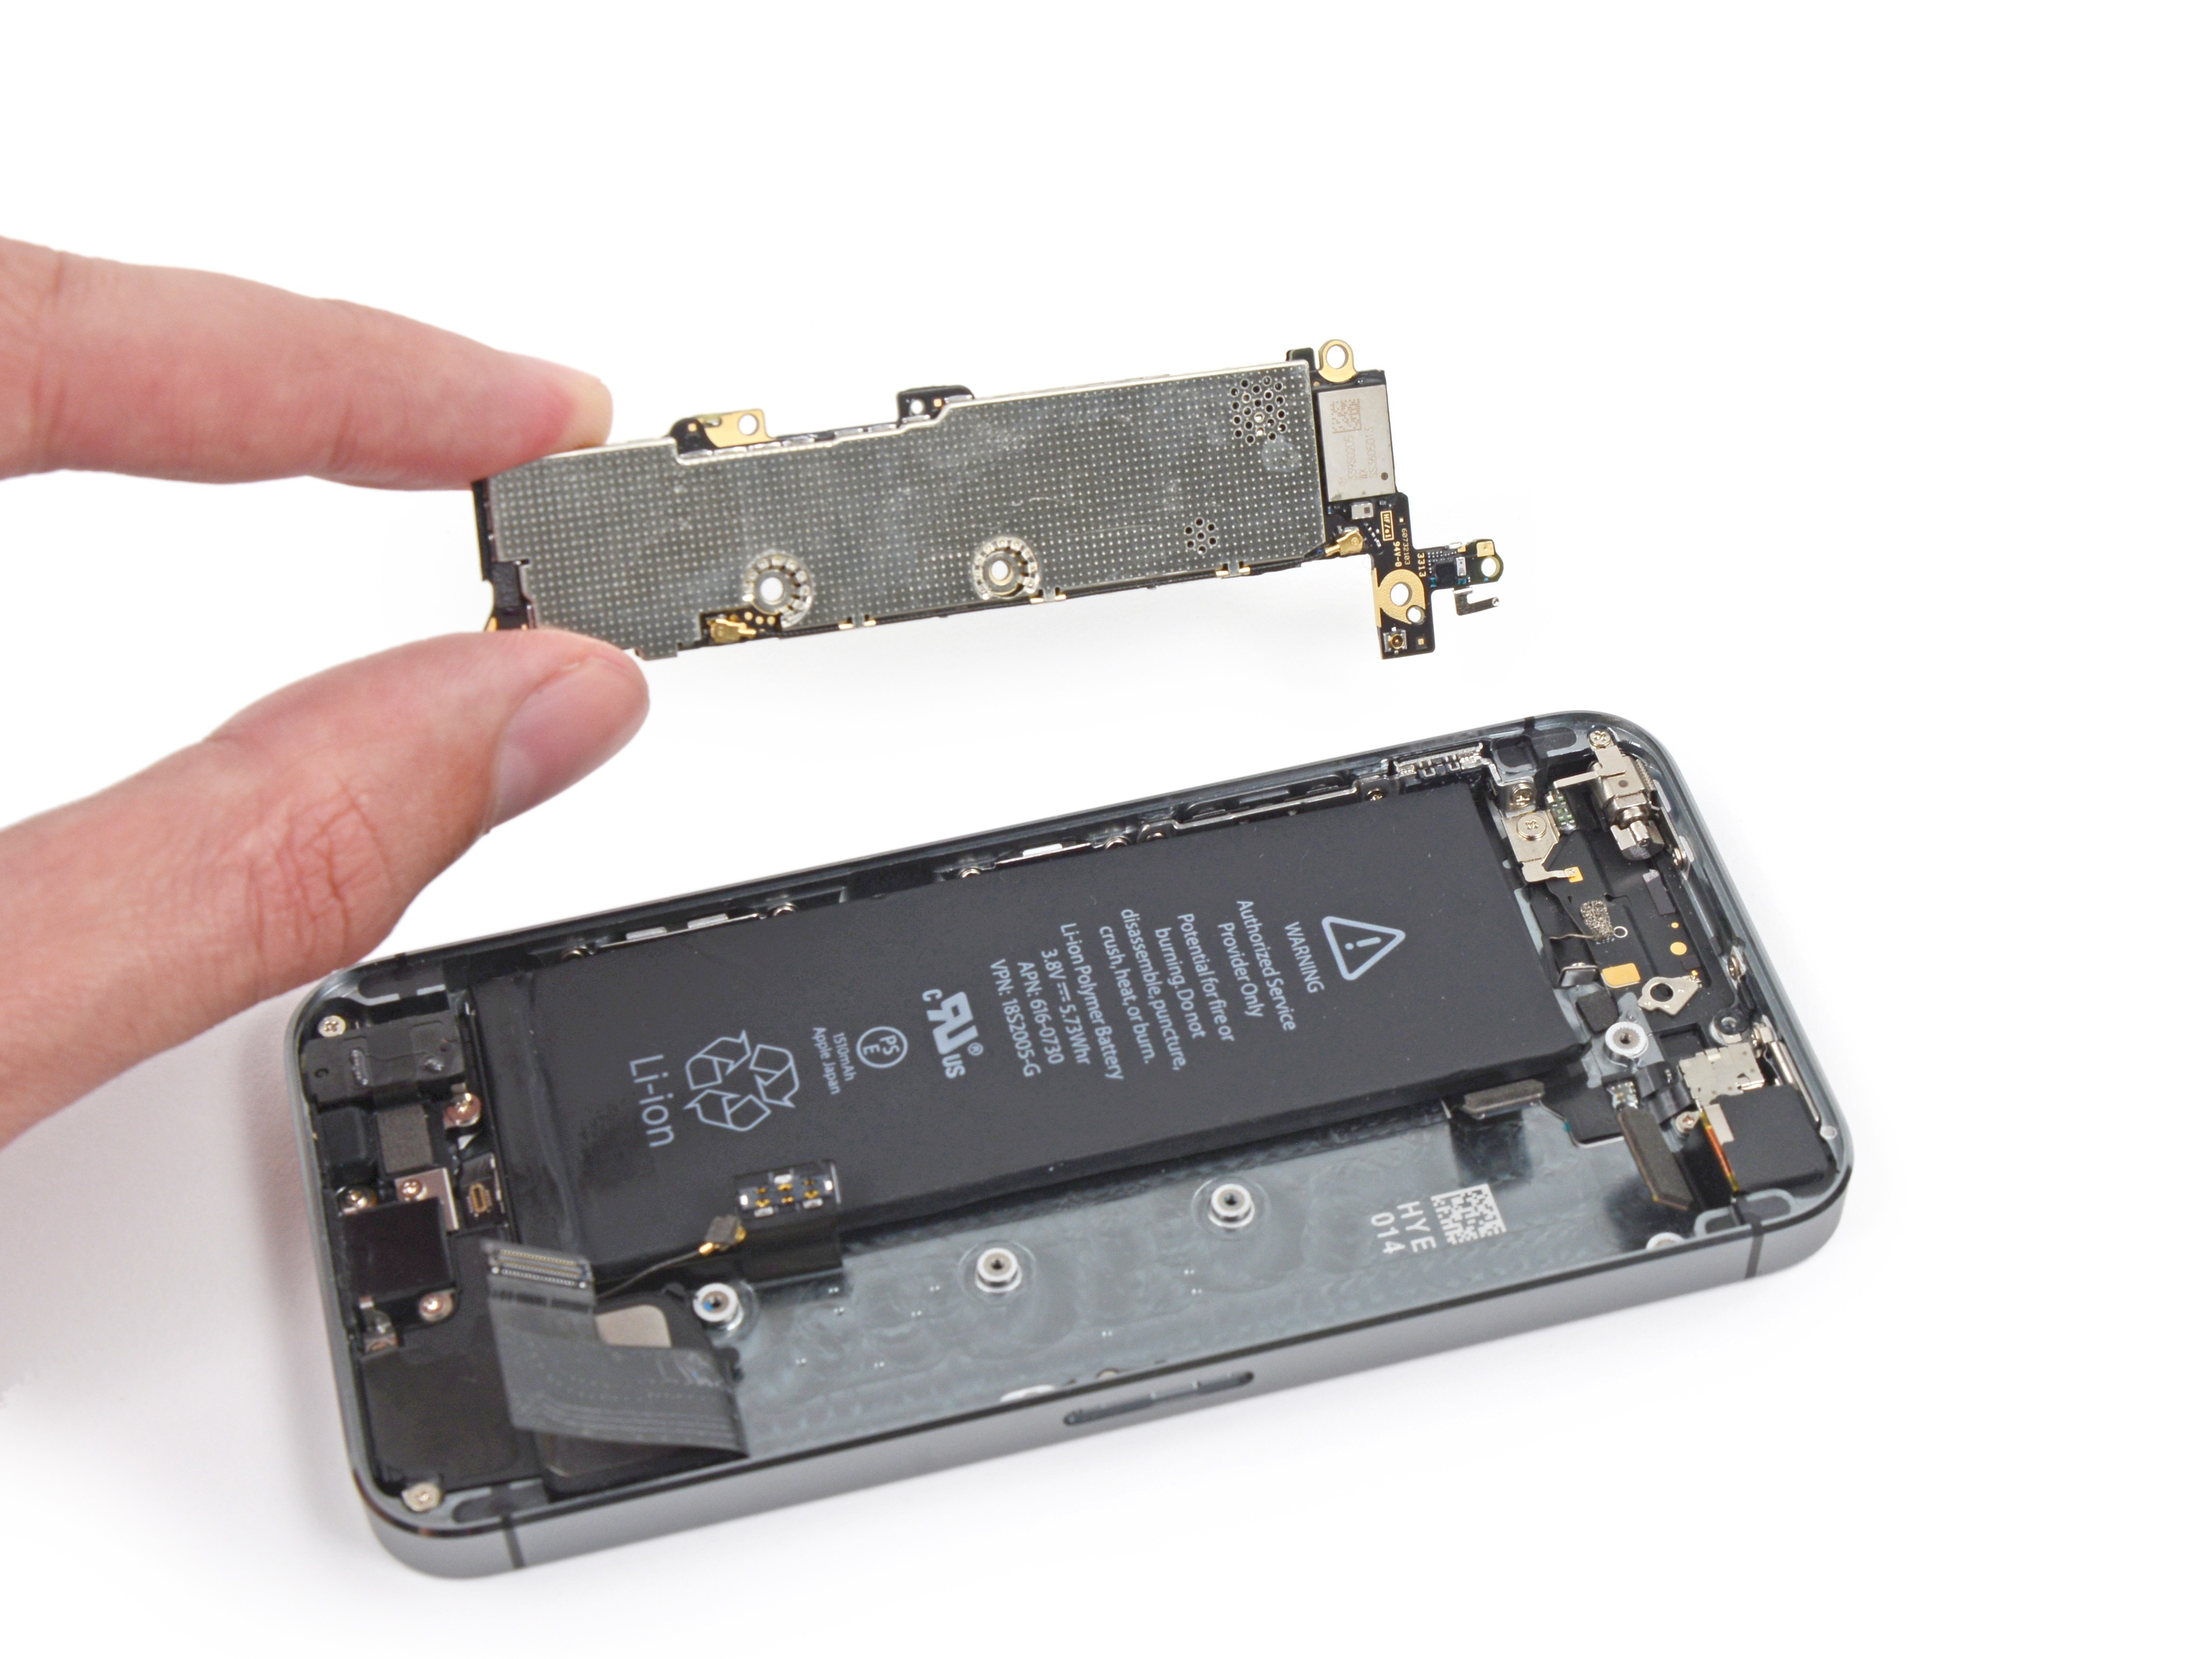 Iphone 5s Logic Board Replacement Ifixit Repair Guide In Case Of Burning On The Main Circuit Check That Problem